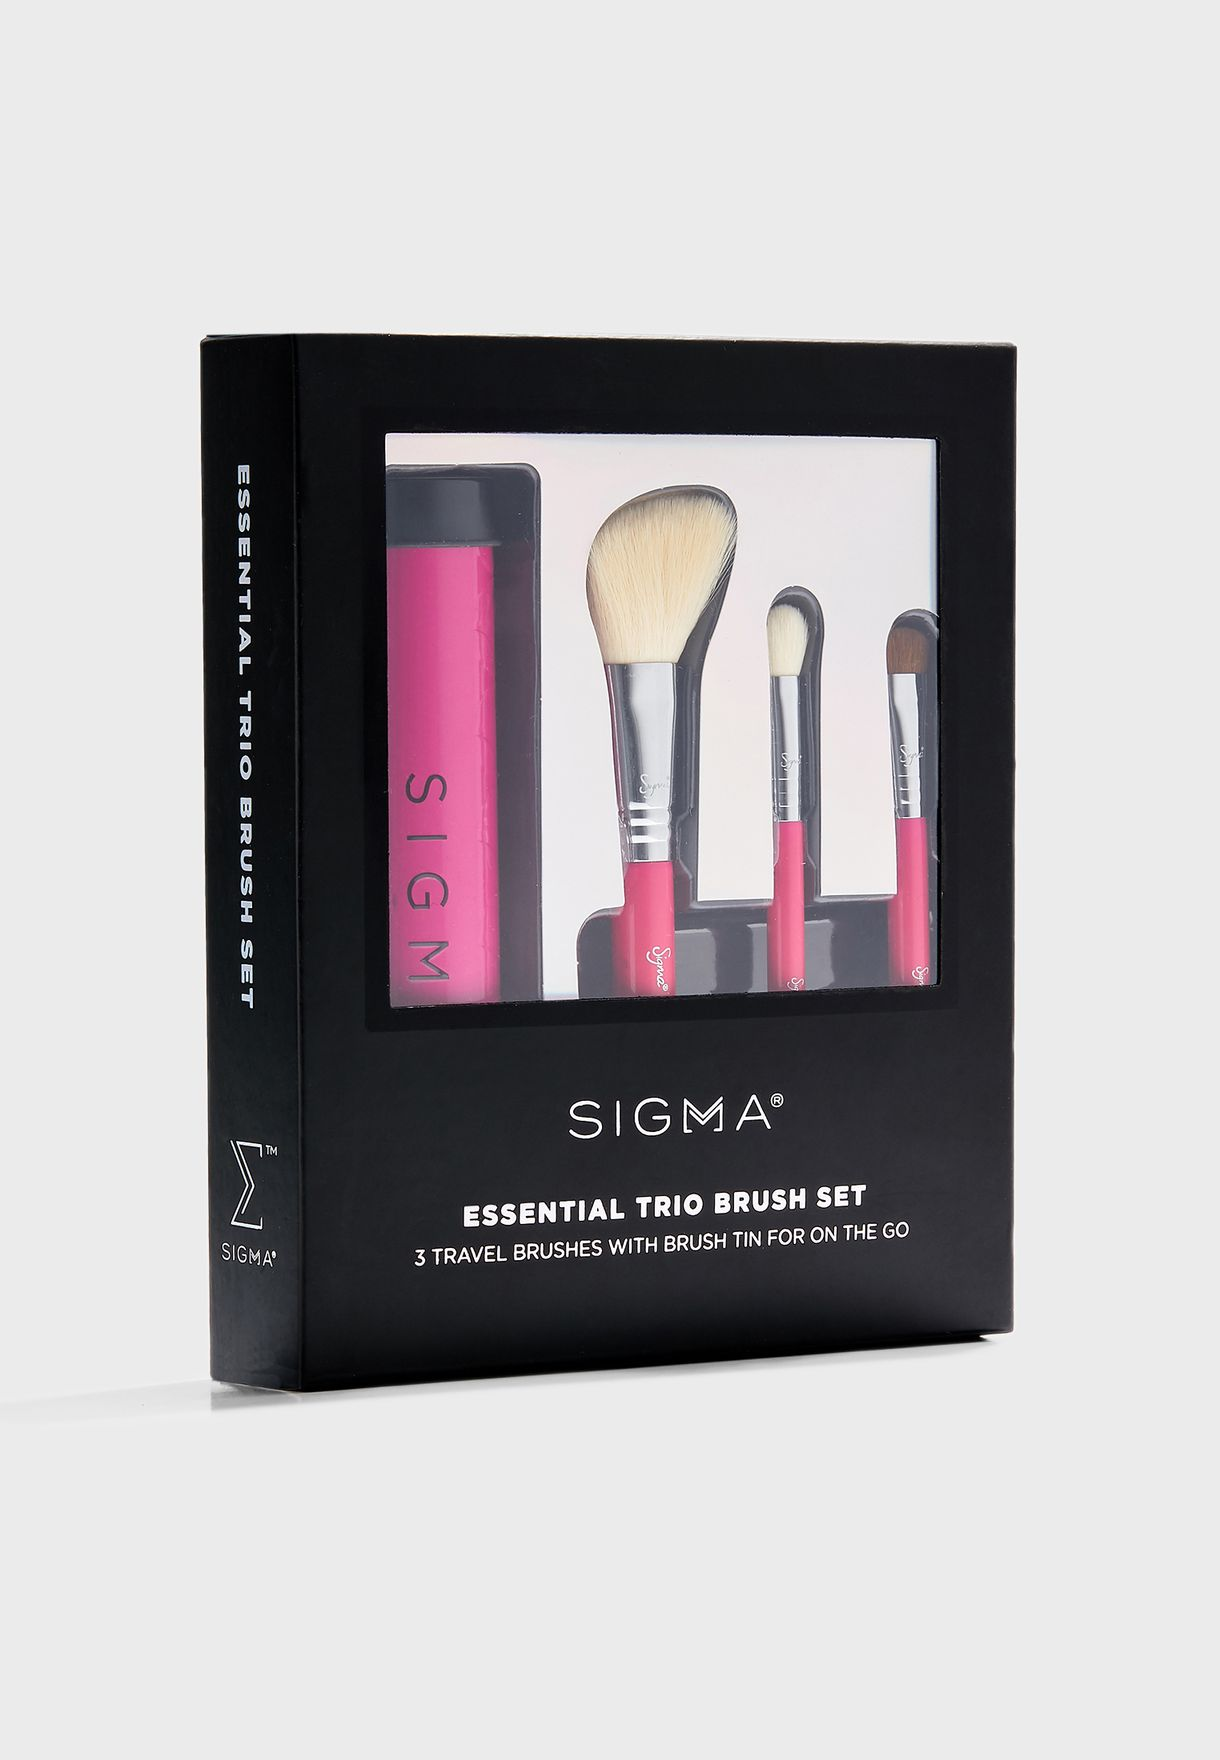 Sigma Essential Trio Brush Kit